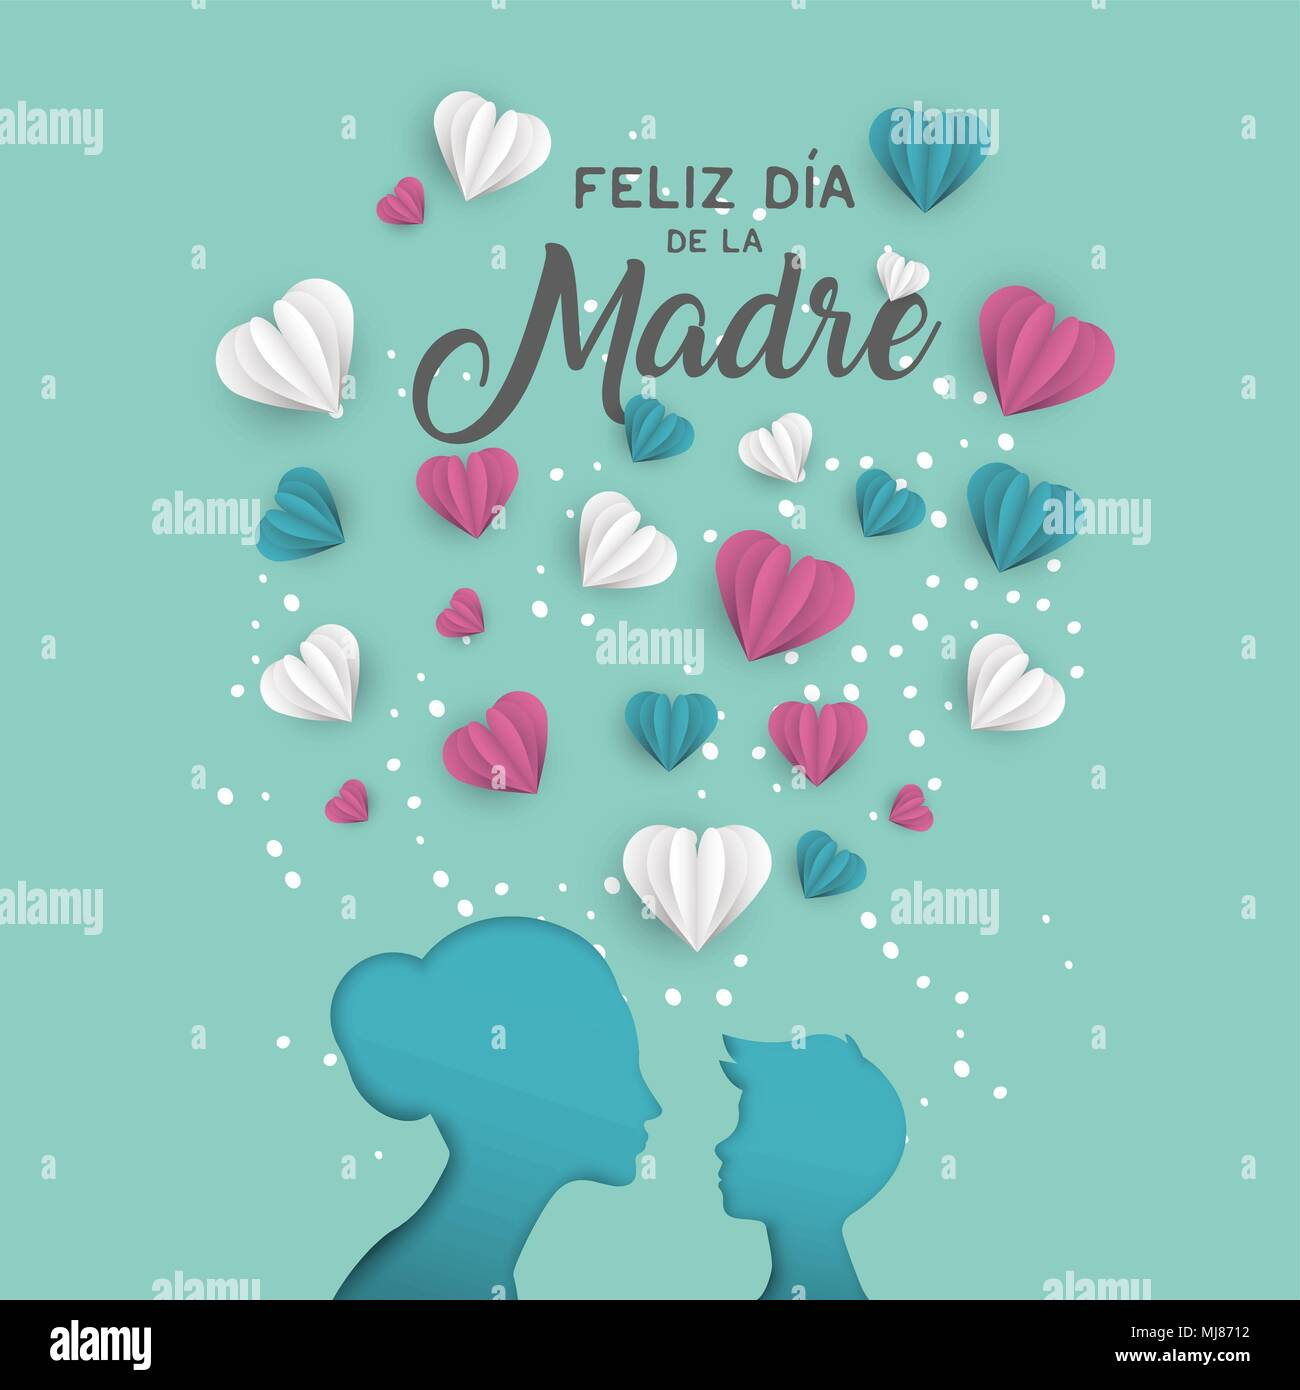 Happy Mothers Day Holiday Greeting Card Illustration In Spanish